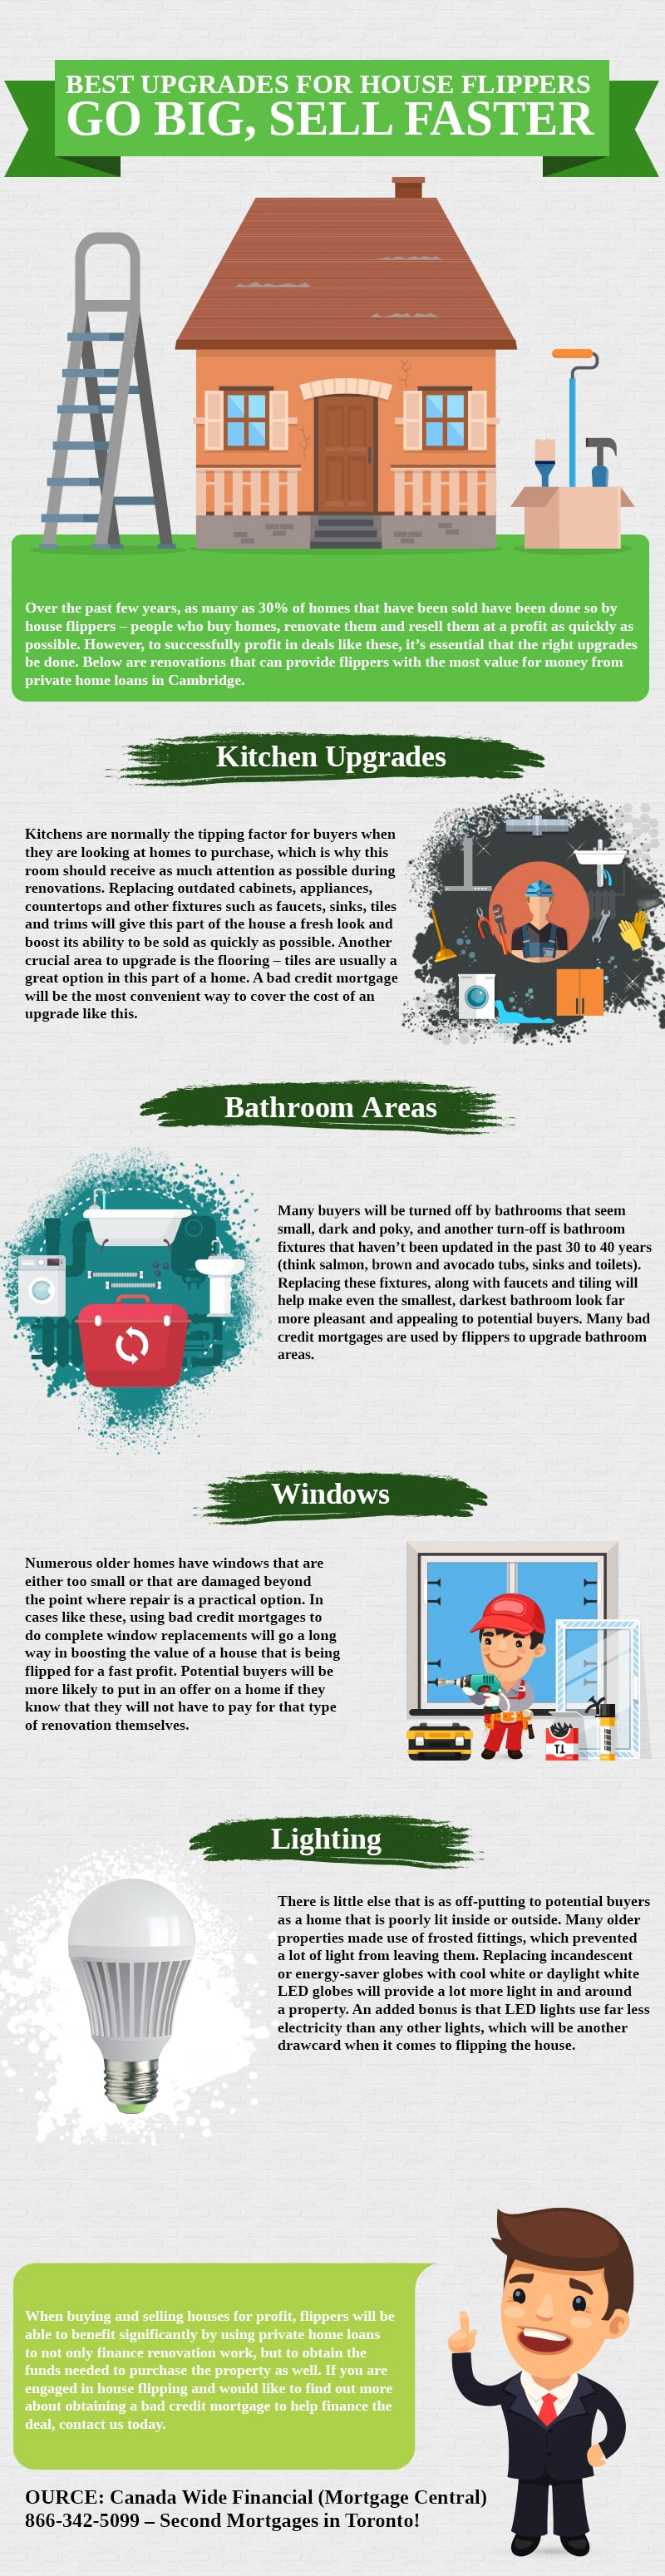 Best Upgrades for House Flippers - Go Big, Sell Faster - Infographic